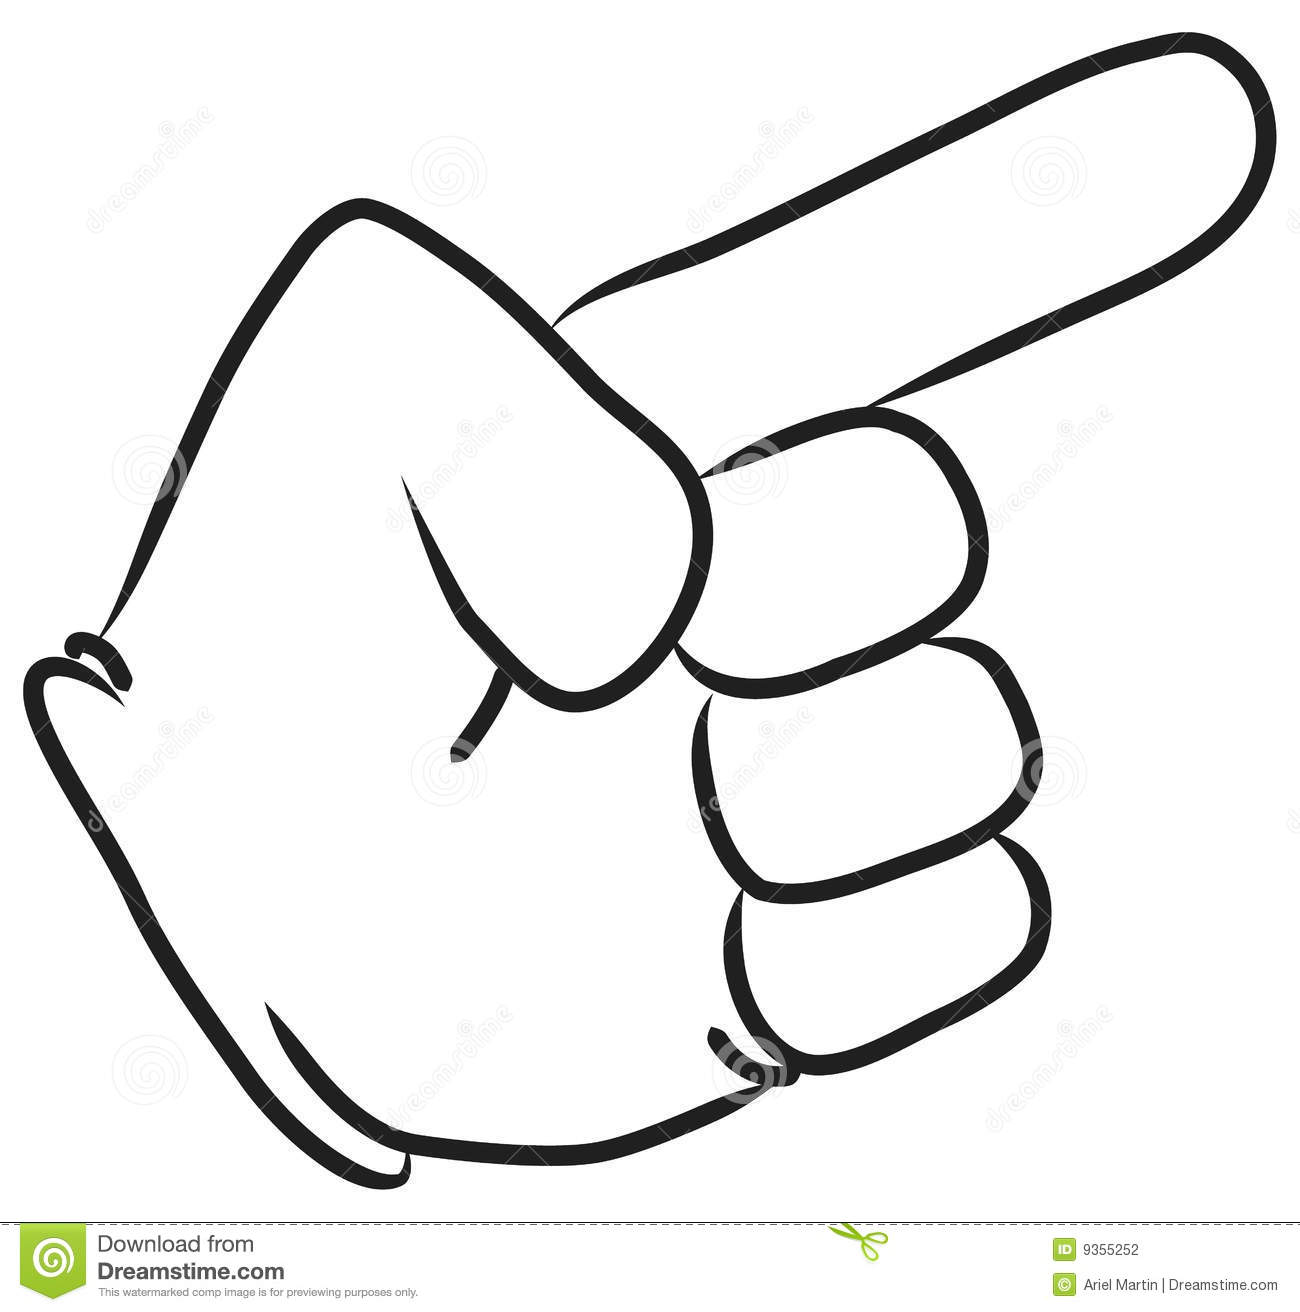 Cartoon hand pointing with the index finger  Outline in black  Vector Cartoon Hand Pointing Up